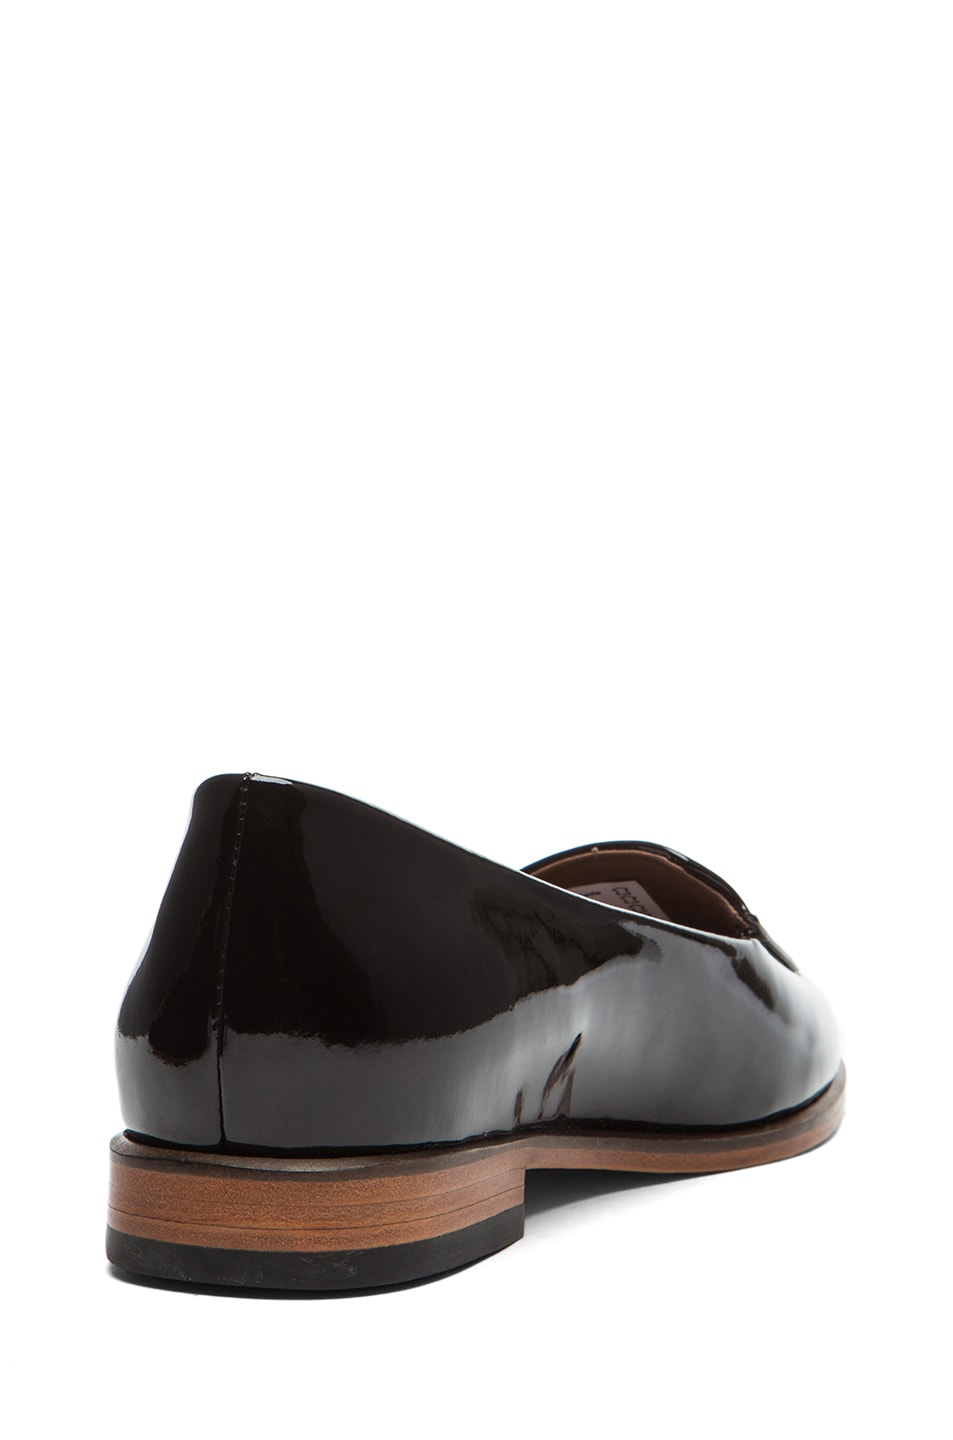 Image 3 of Rachel Comey Bolt Patent Leather Flats in Deep Plum